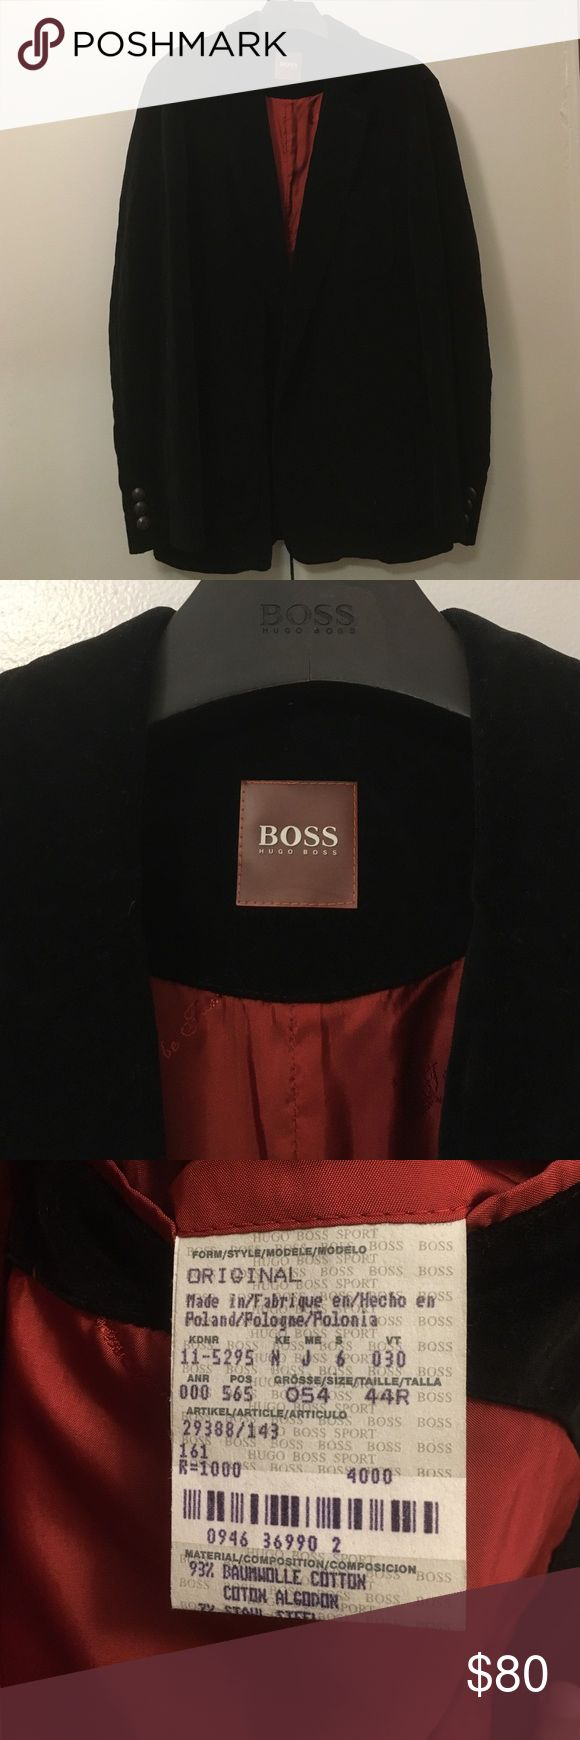 Hugo Boss Orange - velvet jacket Super trendy Hugo Boss velvet jacket - Black Hugo Boss Suits & Blazers Sport Coats & Blazers